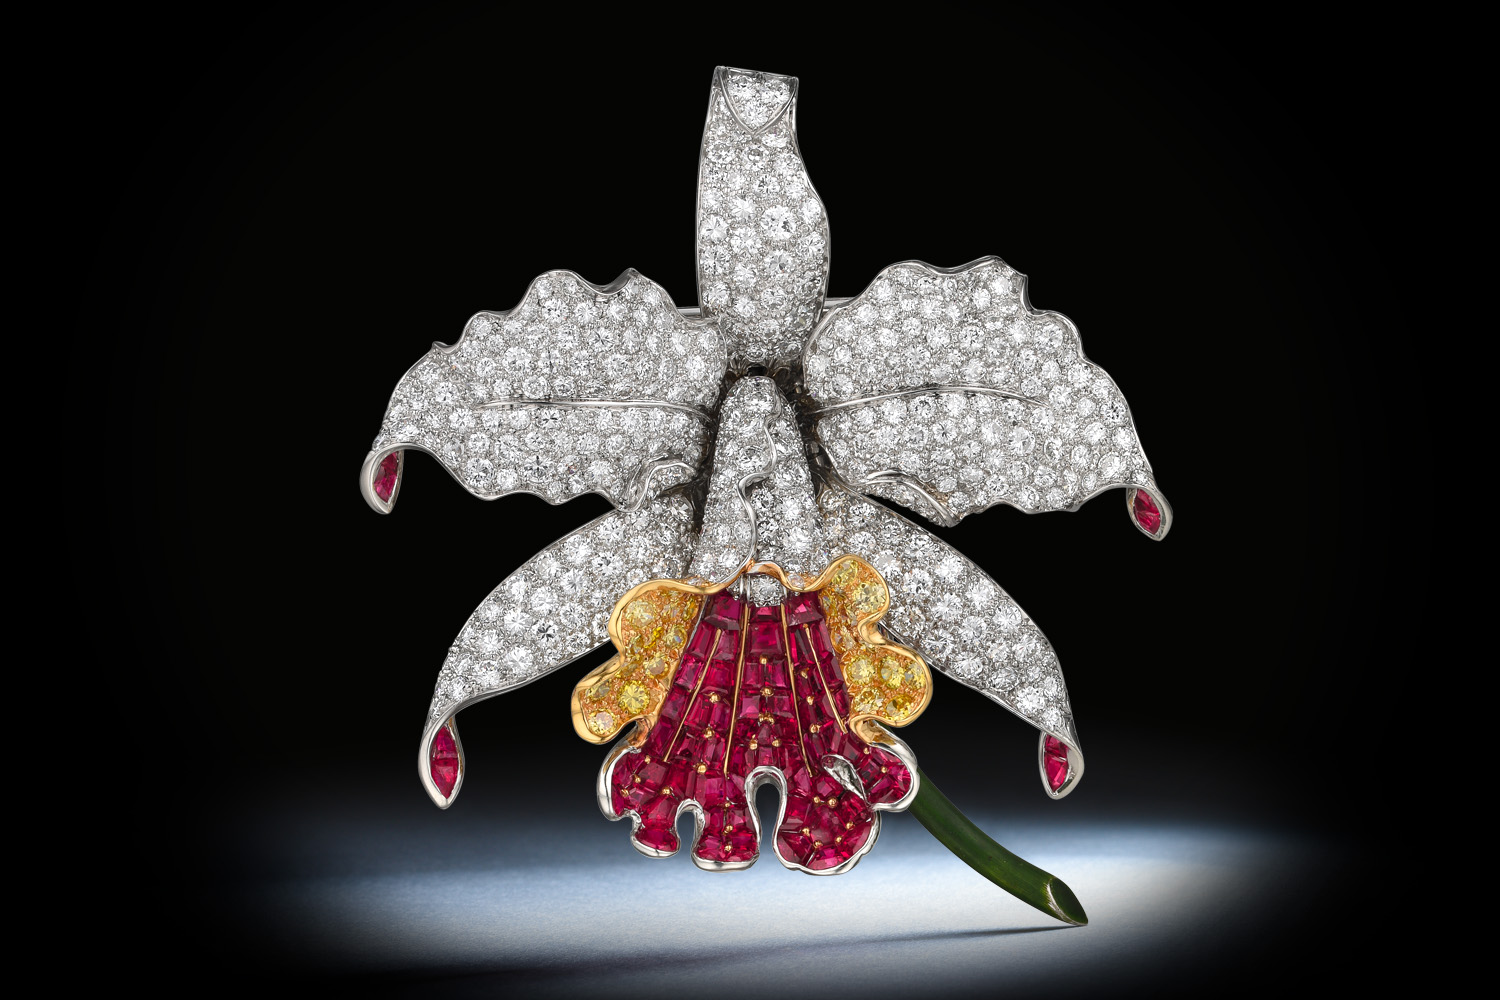 Oscar Heyman Orchid Diamond and Ruby Brooch - Fortuna NYC Fine Jewelry Auction